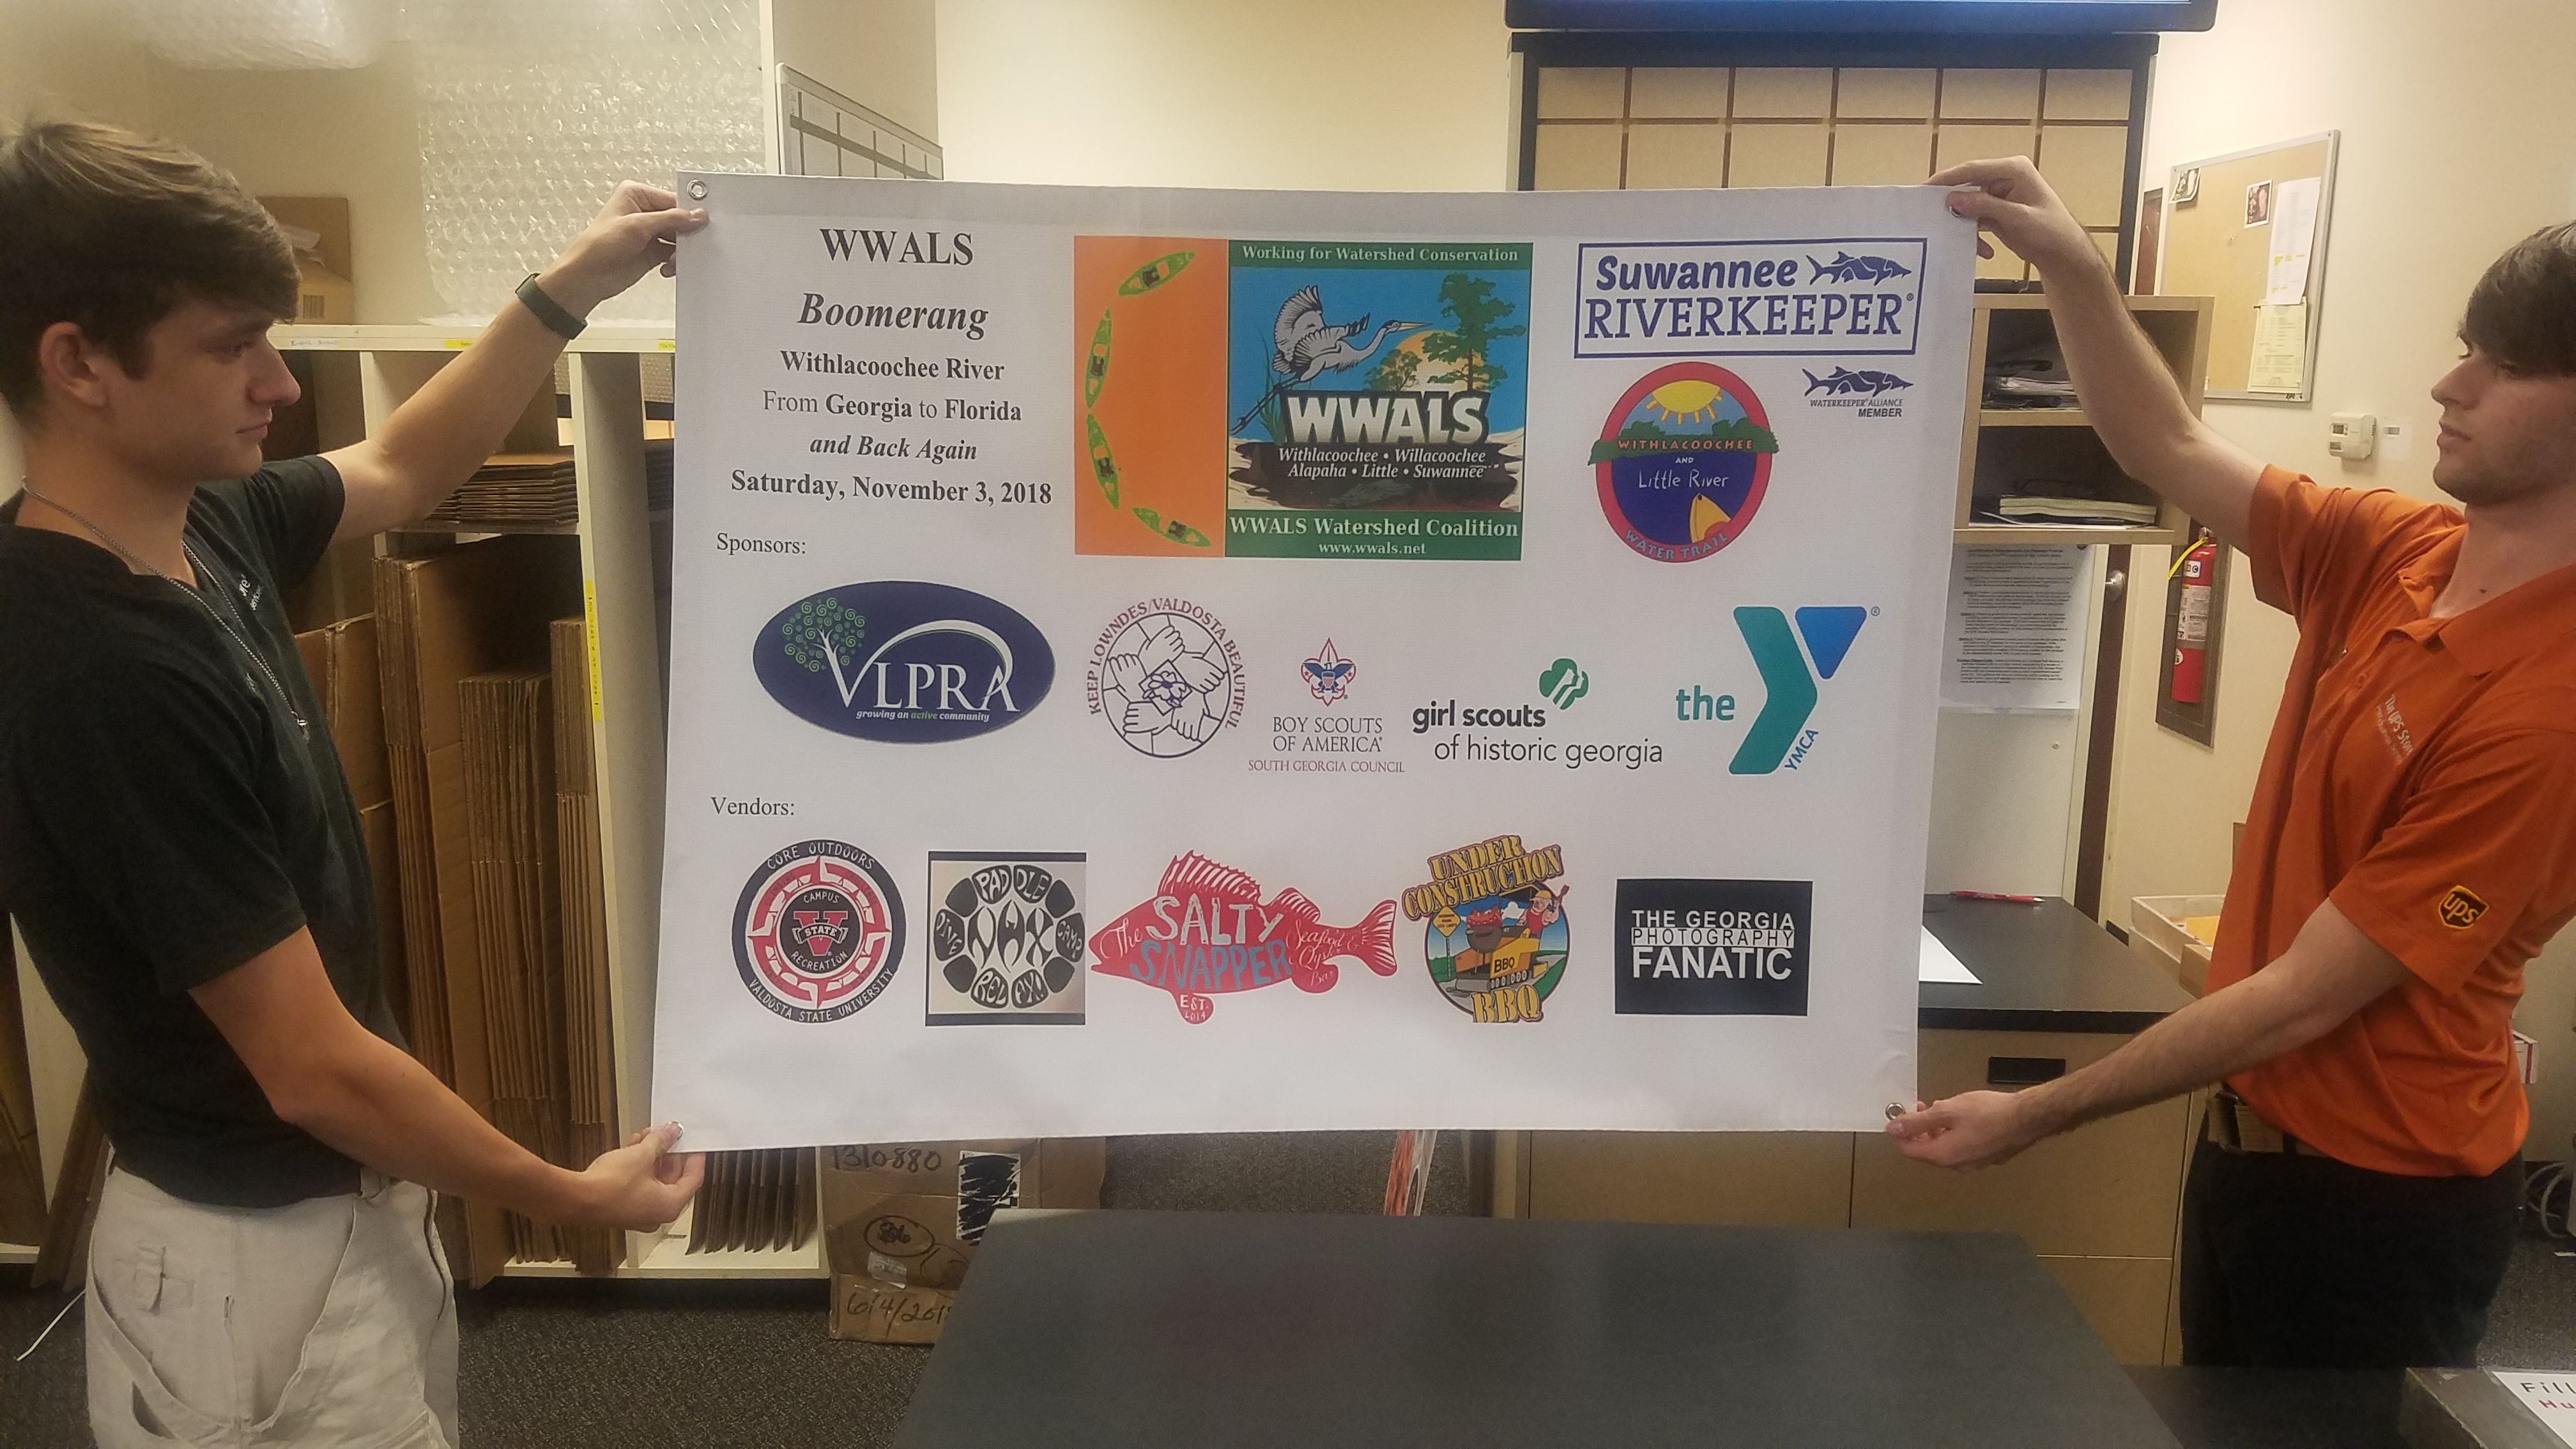 4032x2268 at UPS Store, Banner, in Boomerang Banner, by John S. Quarterman, for WWALS.net, 2 November 2018